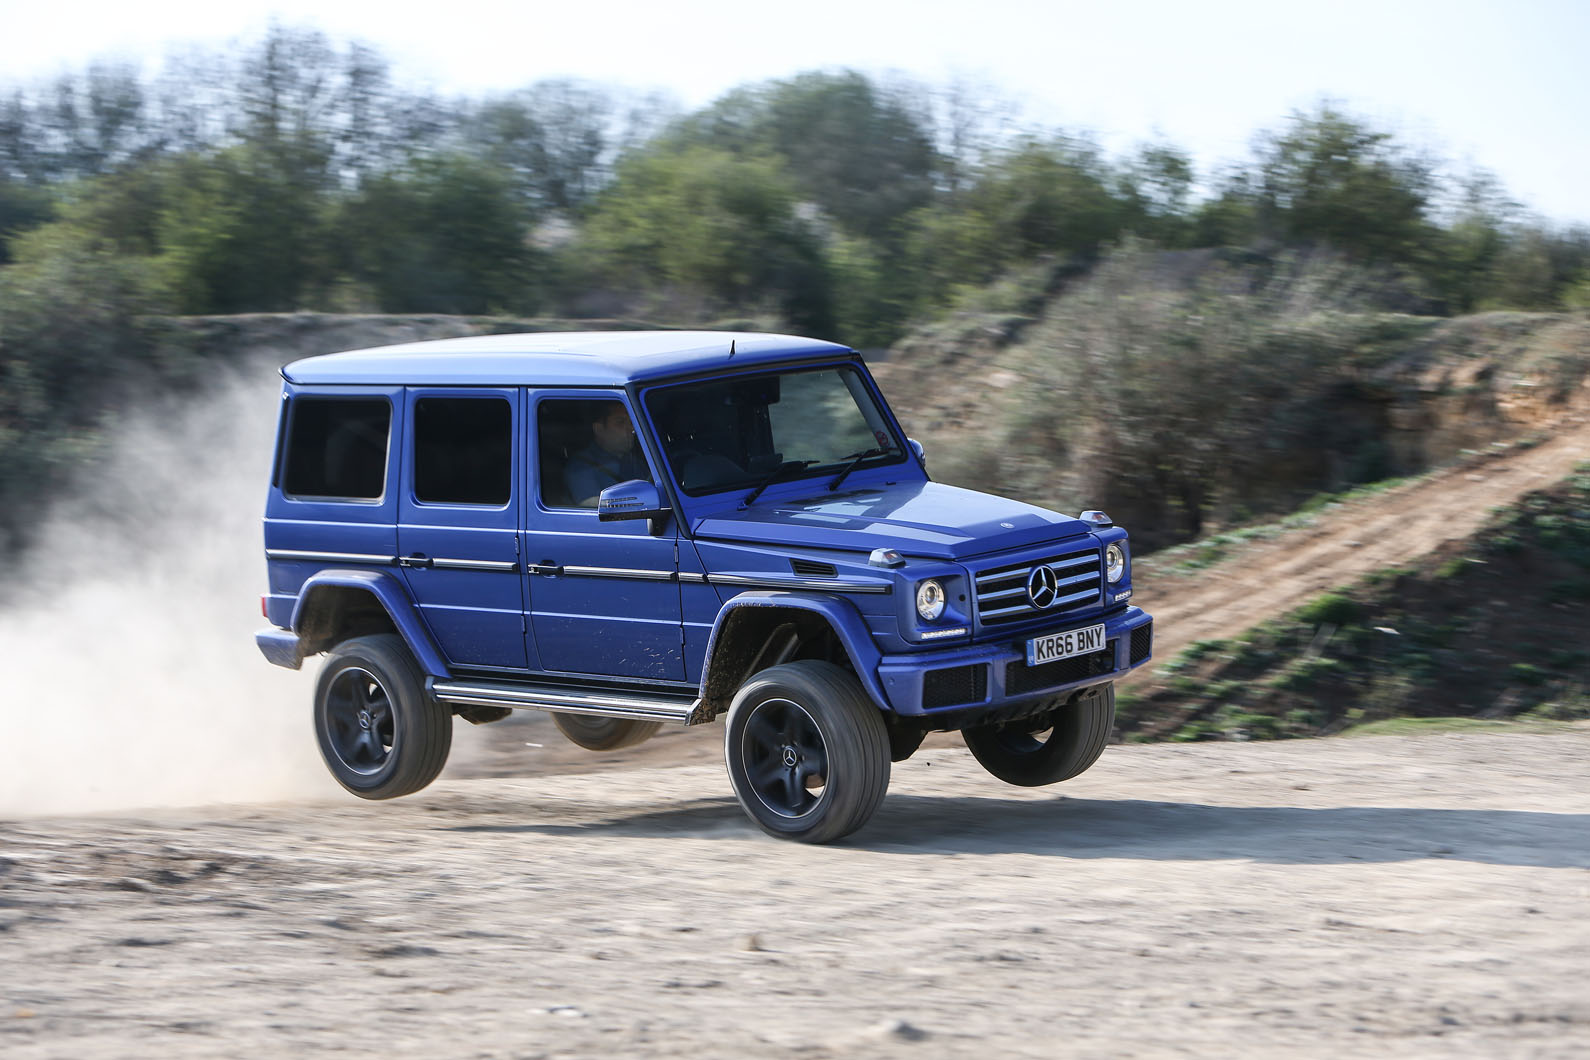 Best 4x4s Suvs 2017 Off Road Heroes Compared Autocar Automotive Circuit Tester 2018 Cars Reviews Those Are The Three Traditional Car Four Is Here To Uphold Honour Of Double Cab Pick Up Trend We Could Have Picked Any Several